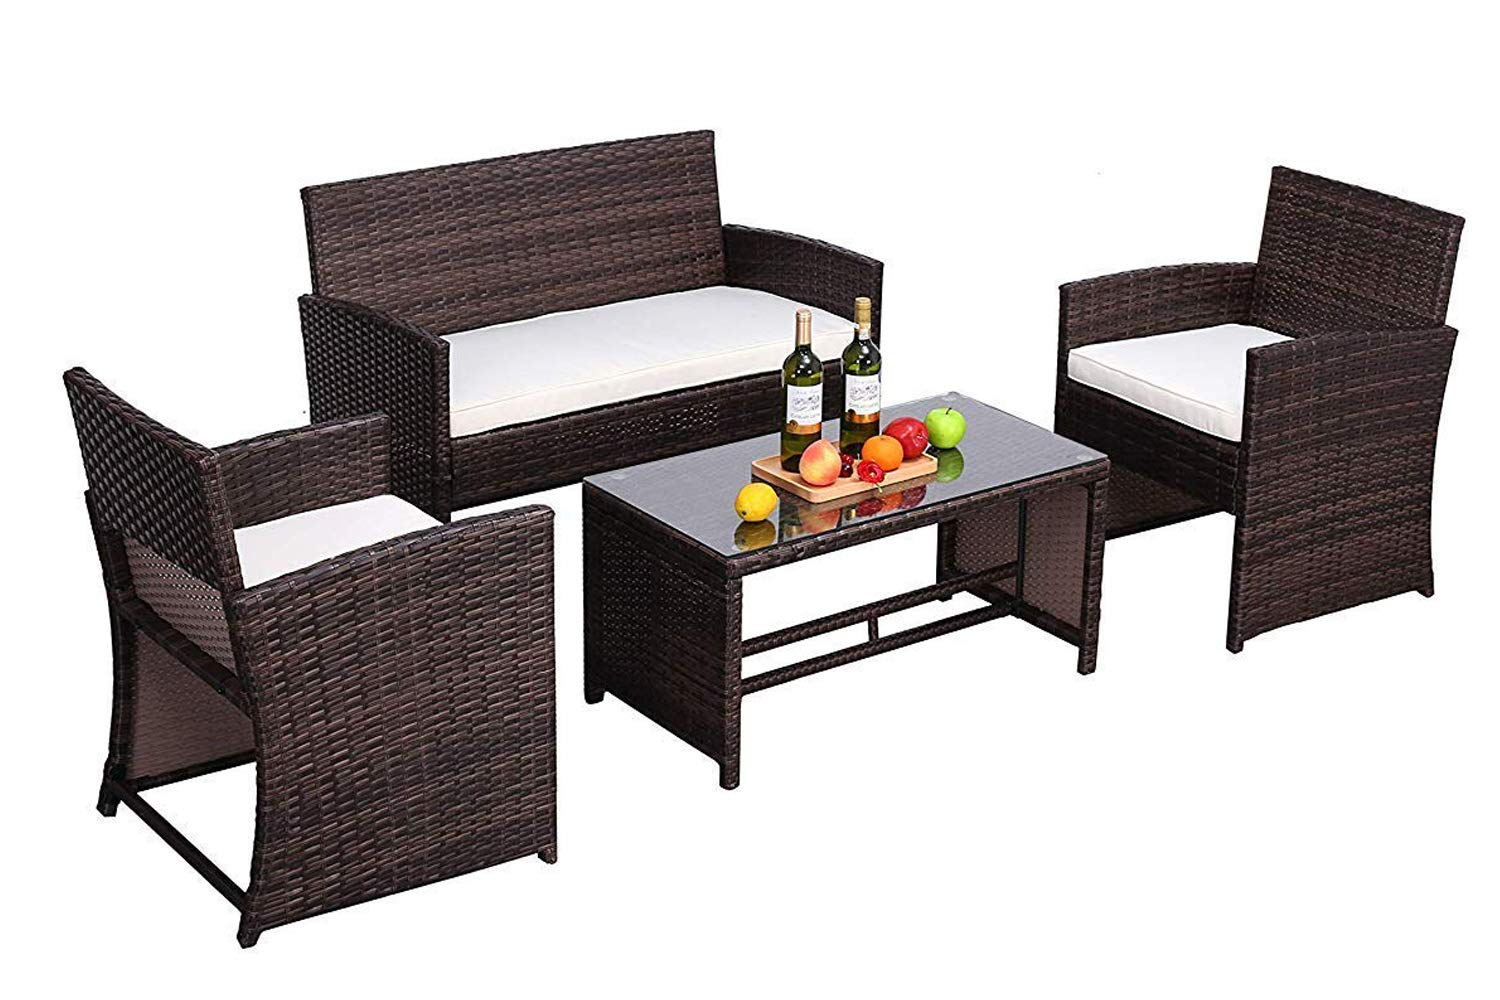 Do4U Outdoor Patio Furniture Set 4 Pcs PE Rattan Wicker Garden Sofa and Chairs Set with Beige Cushion with Table (Mix-Beige) - 【Premium Quality】Our Outdoor wicker furniture set are made of steel frame and PE Wicker. PE wicker is more resistant to sun, rain, heat, better than traditional wicker material. 【Assembly Required】Complimentary socket wrench is included for your convenience for quick and efficient assembly. All necessary hardware and instructions included. 【Free Combination】Modern & reconfigurable outdoor furniture set. Provide stylish and comfortable lounging at affordable price. - patio-furniture, patio, conversation-sets - 710FY8kcgDL -